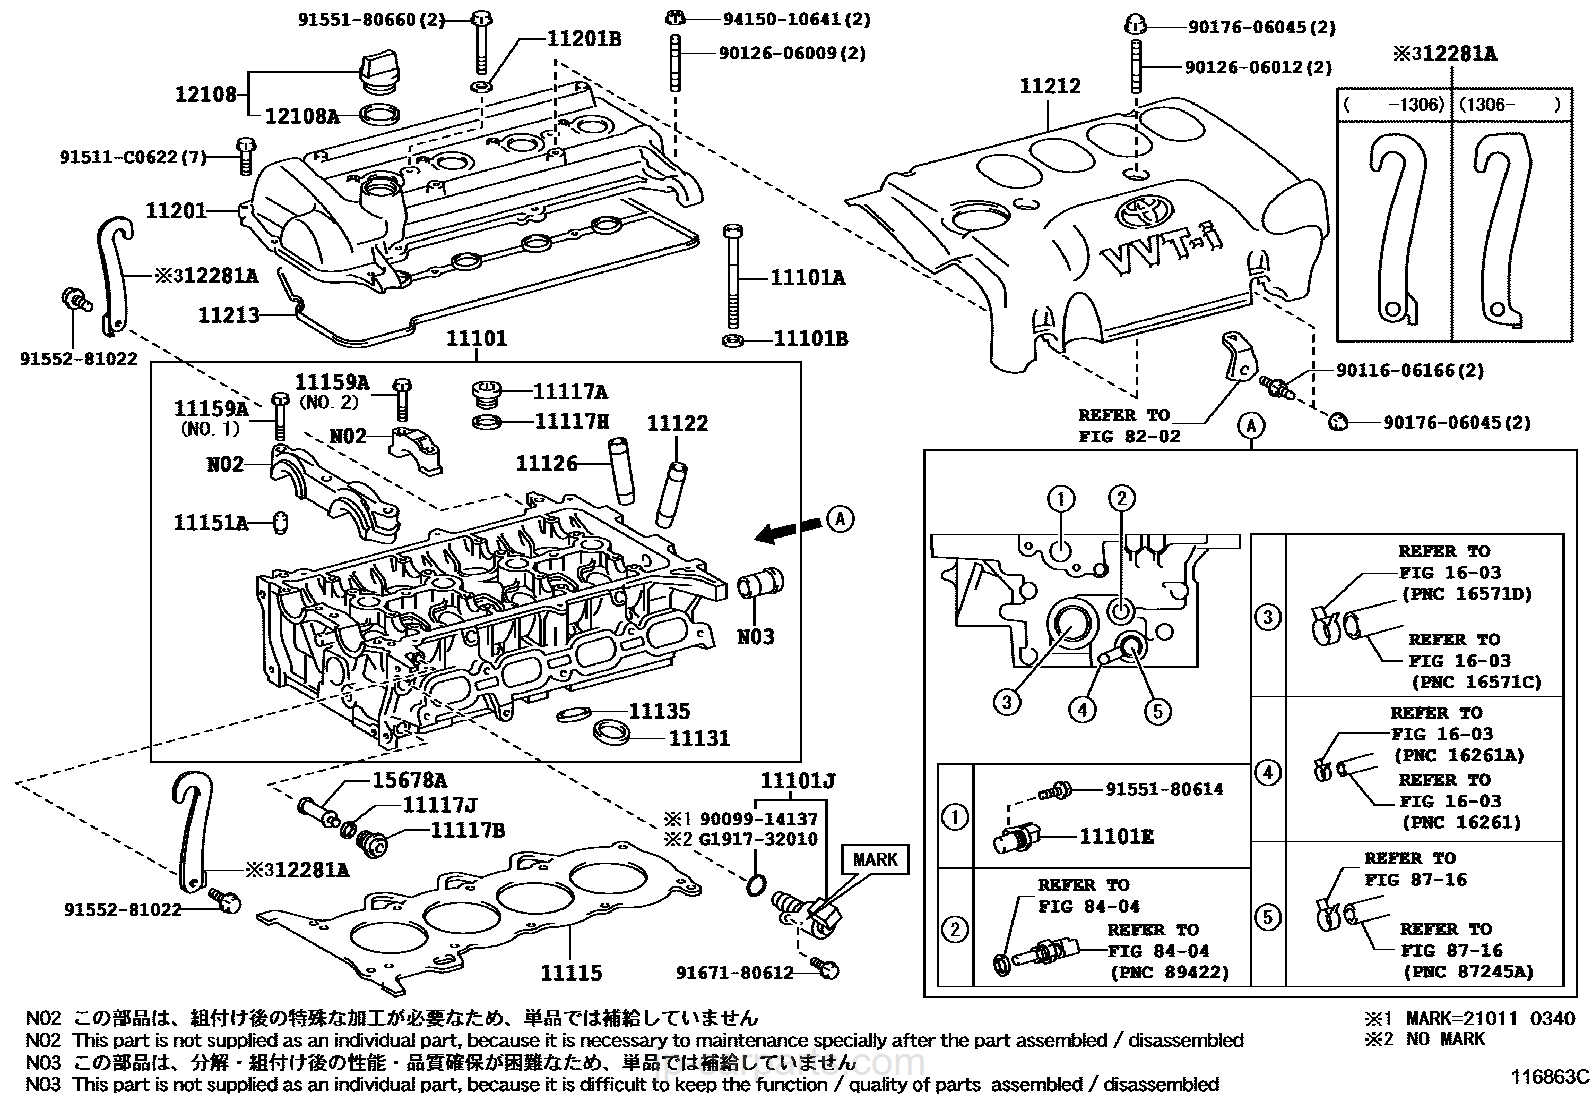 2007 toyota yaris radio wiring diagram 2007 image 2004 toyota echo wiring diagram 2001 toyota solara wiring diagram on 2007 toyota yaris radio wiring